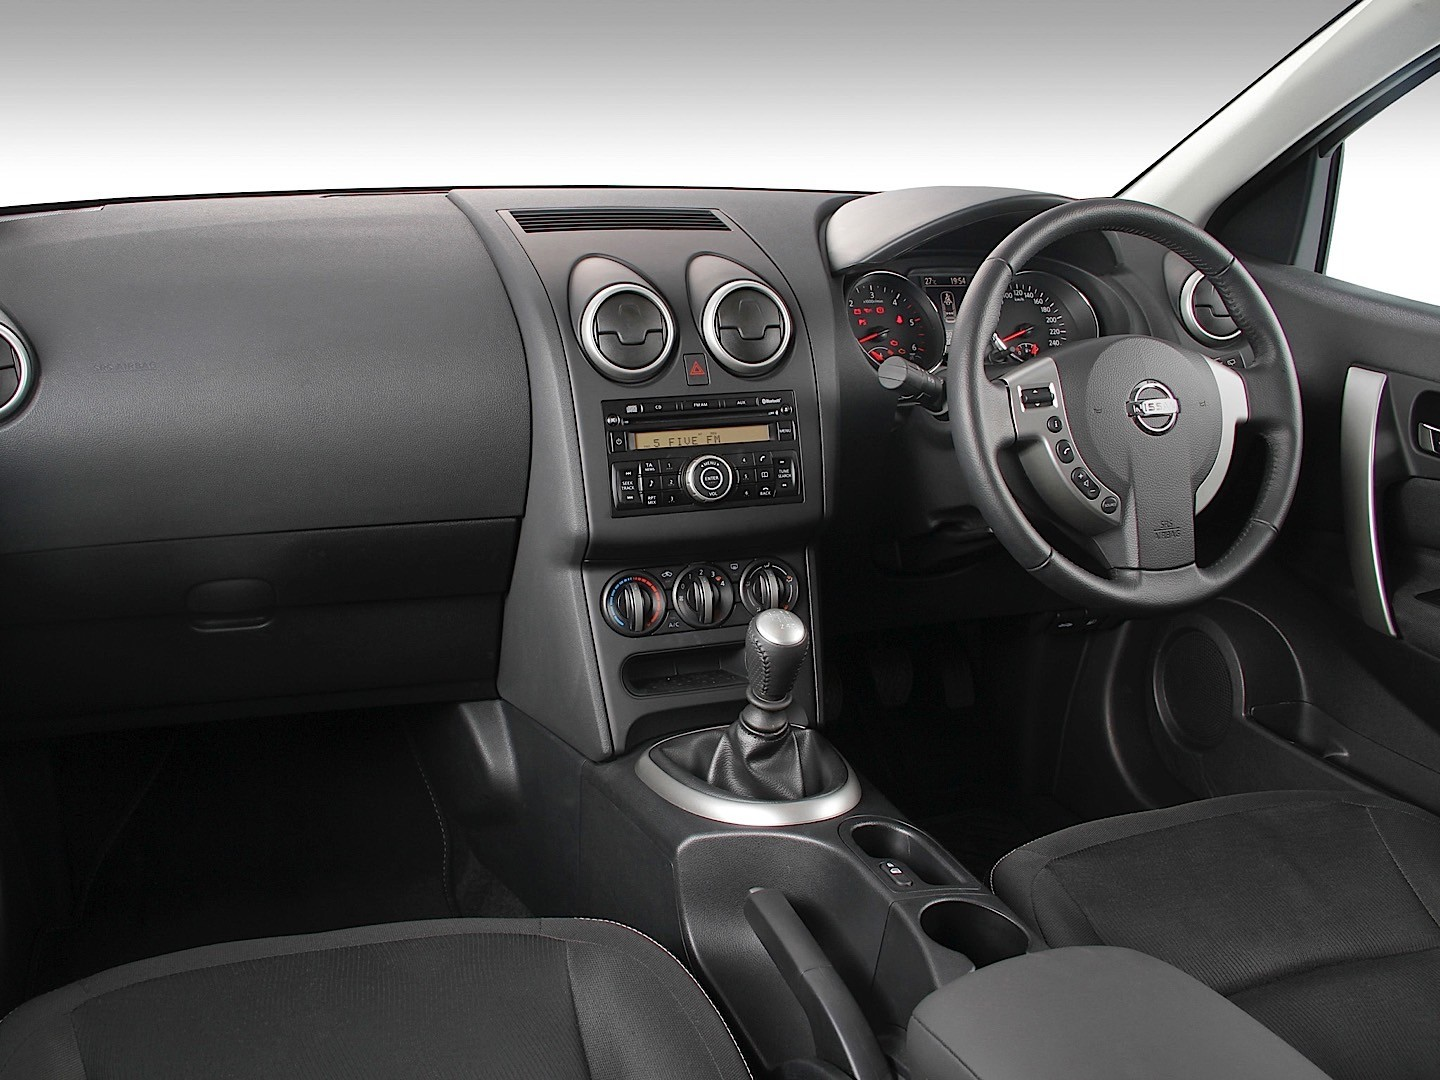 100 nissan qashqai 2013 interior blamethemanual for Interior nissan qashqai